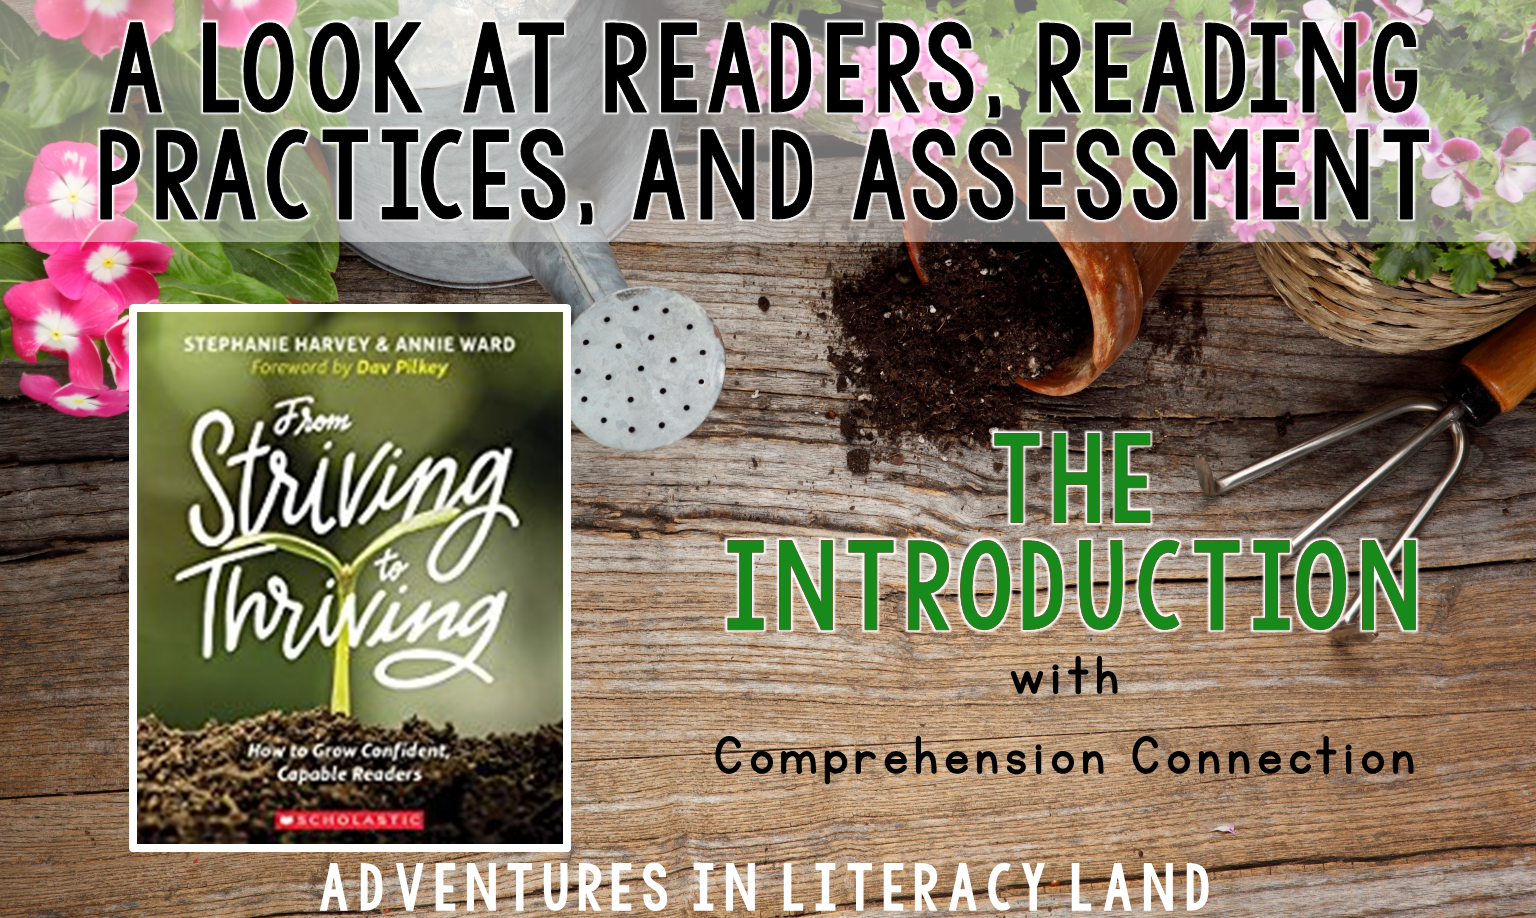 In this post, we begin our book study of From Striving to Thriving. We explore reading behaviors, current practices, and assessment before digging into new ideas.